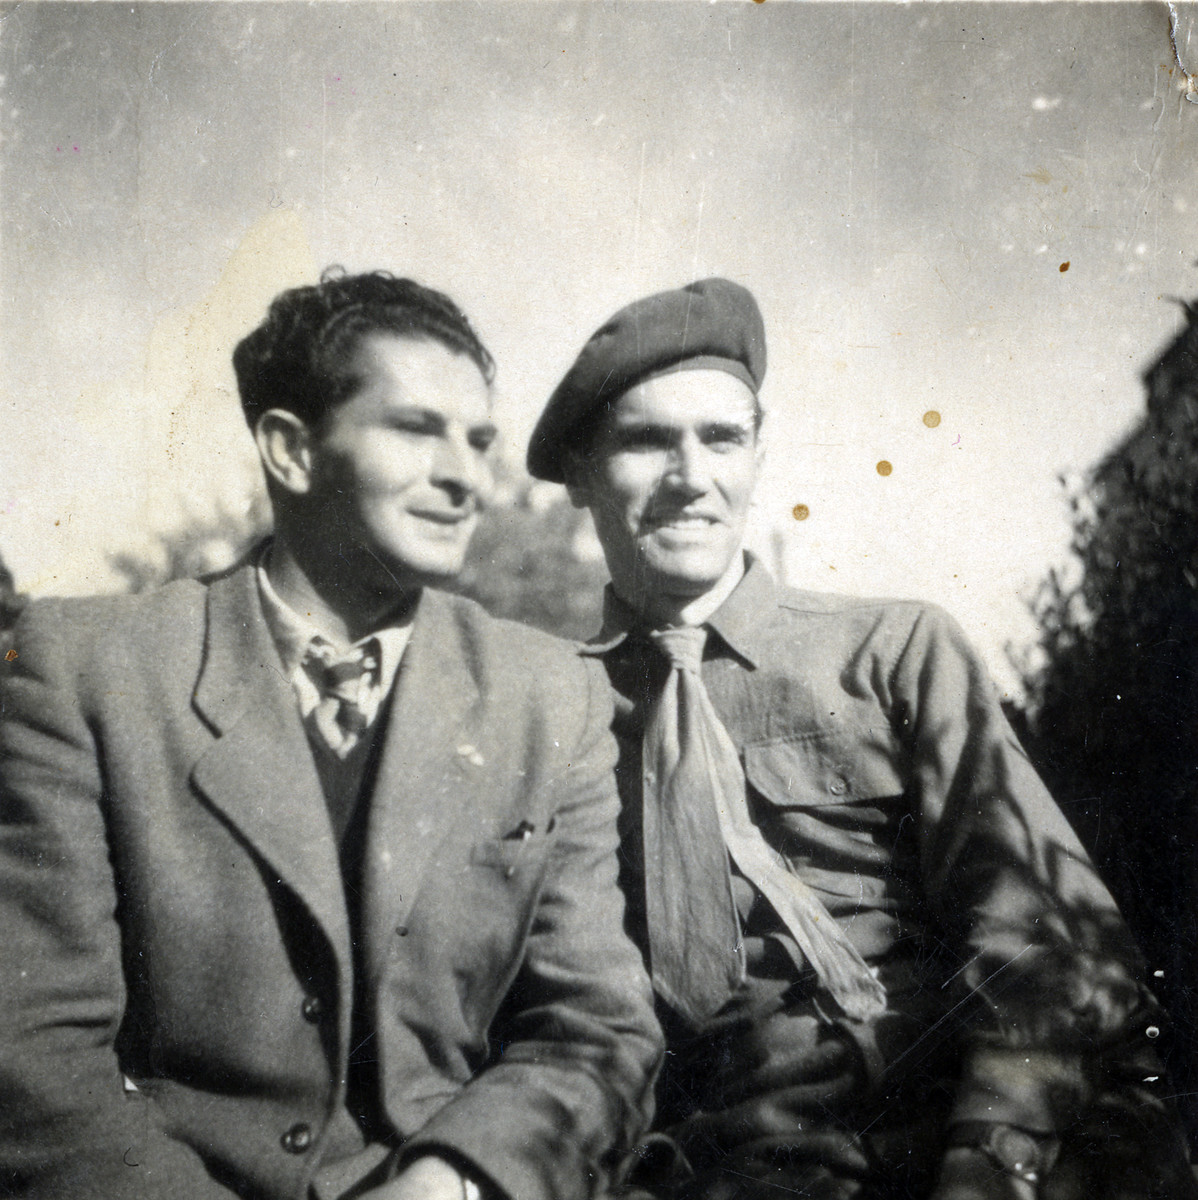 Close-up portrait of Ernst Hellinger (right) with Zoltan Yakubovich (left).